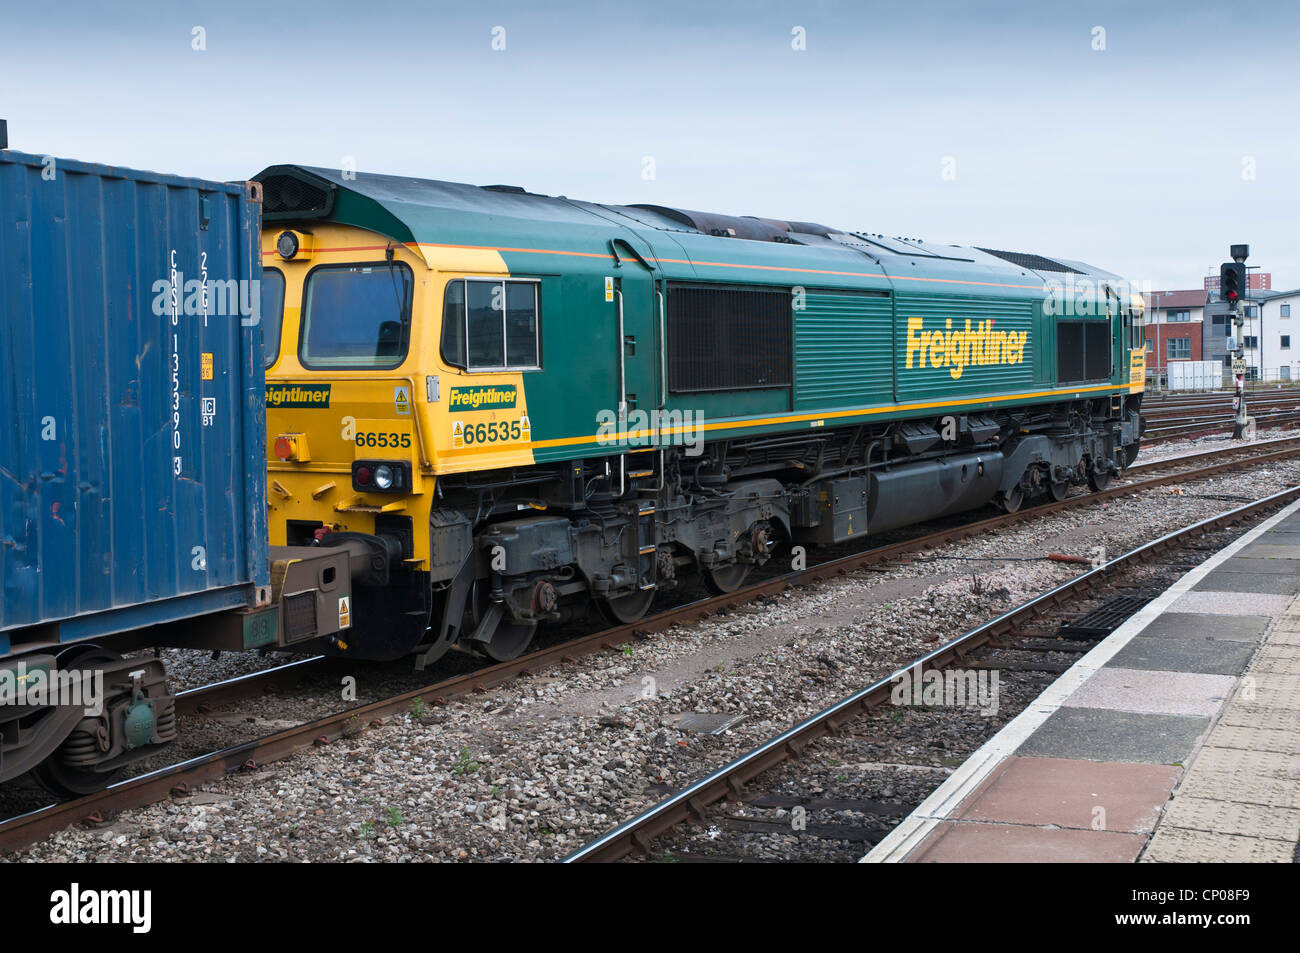 A  Freightliner Class 66 locomotive waiting at a red signal heading a train load of container freight wagons. - Stock Image